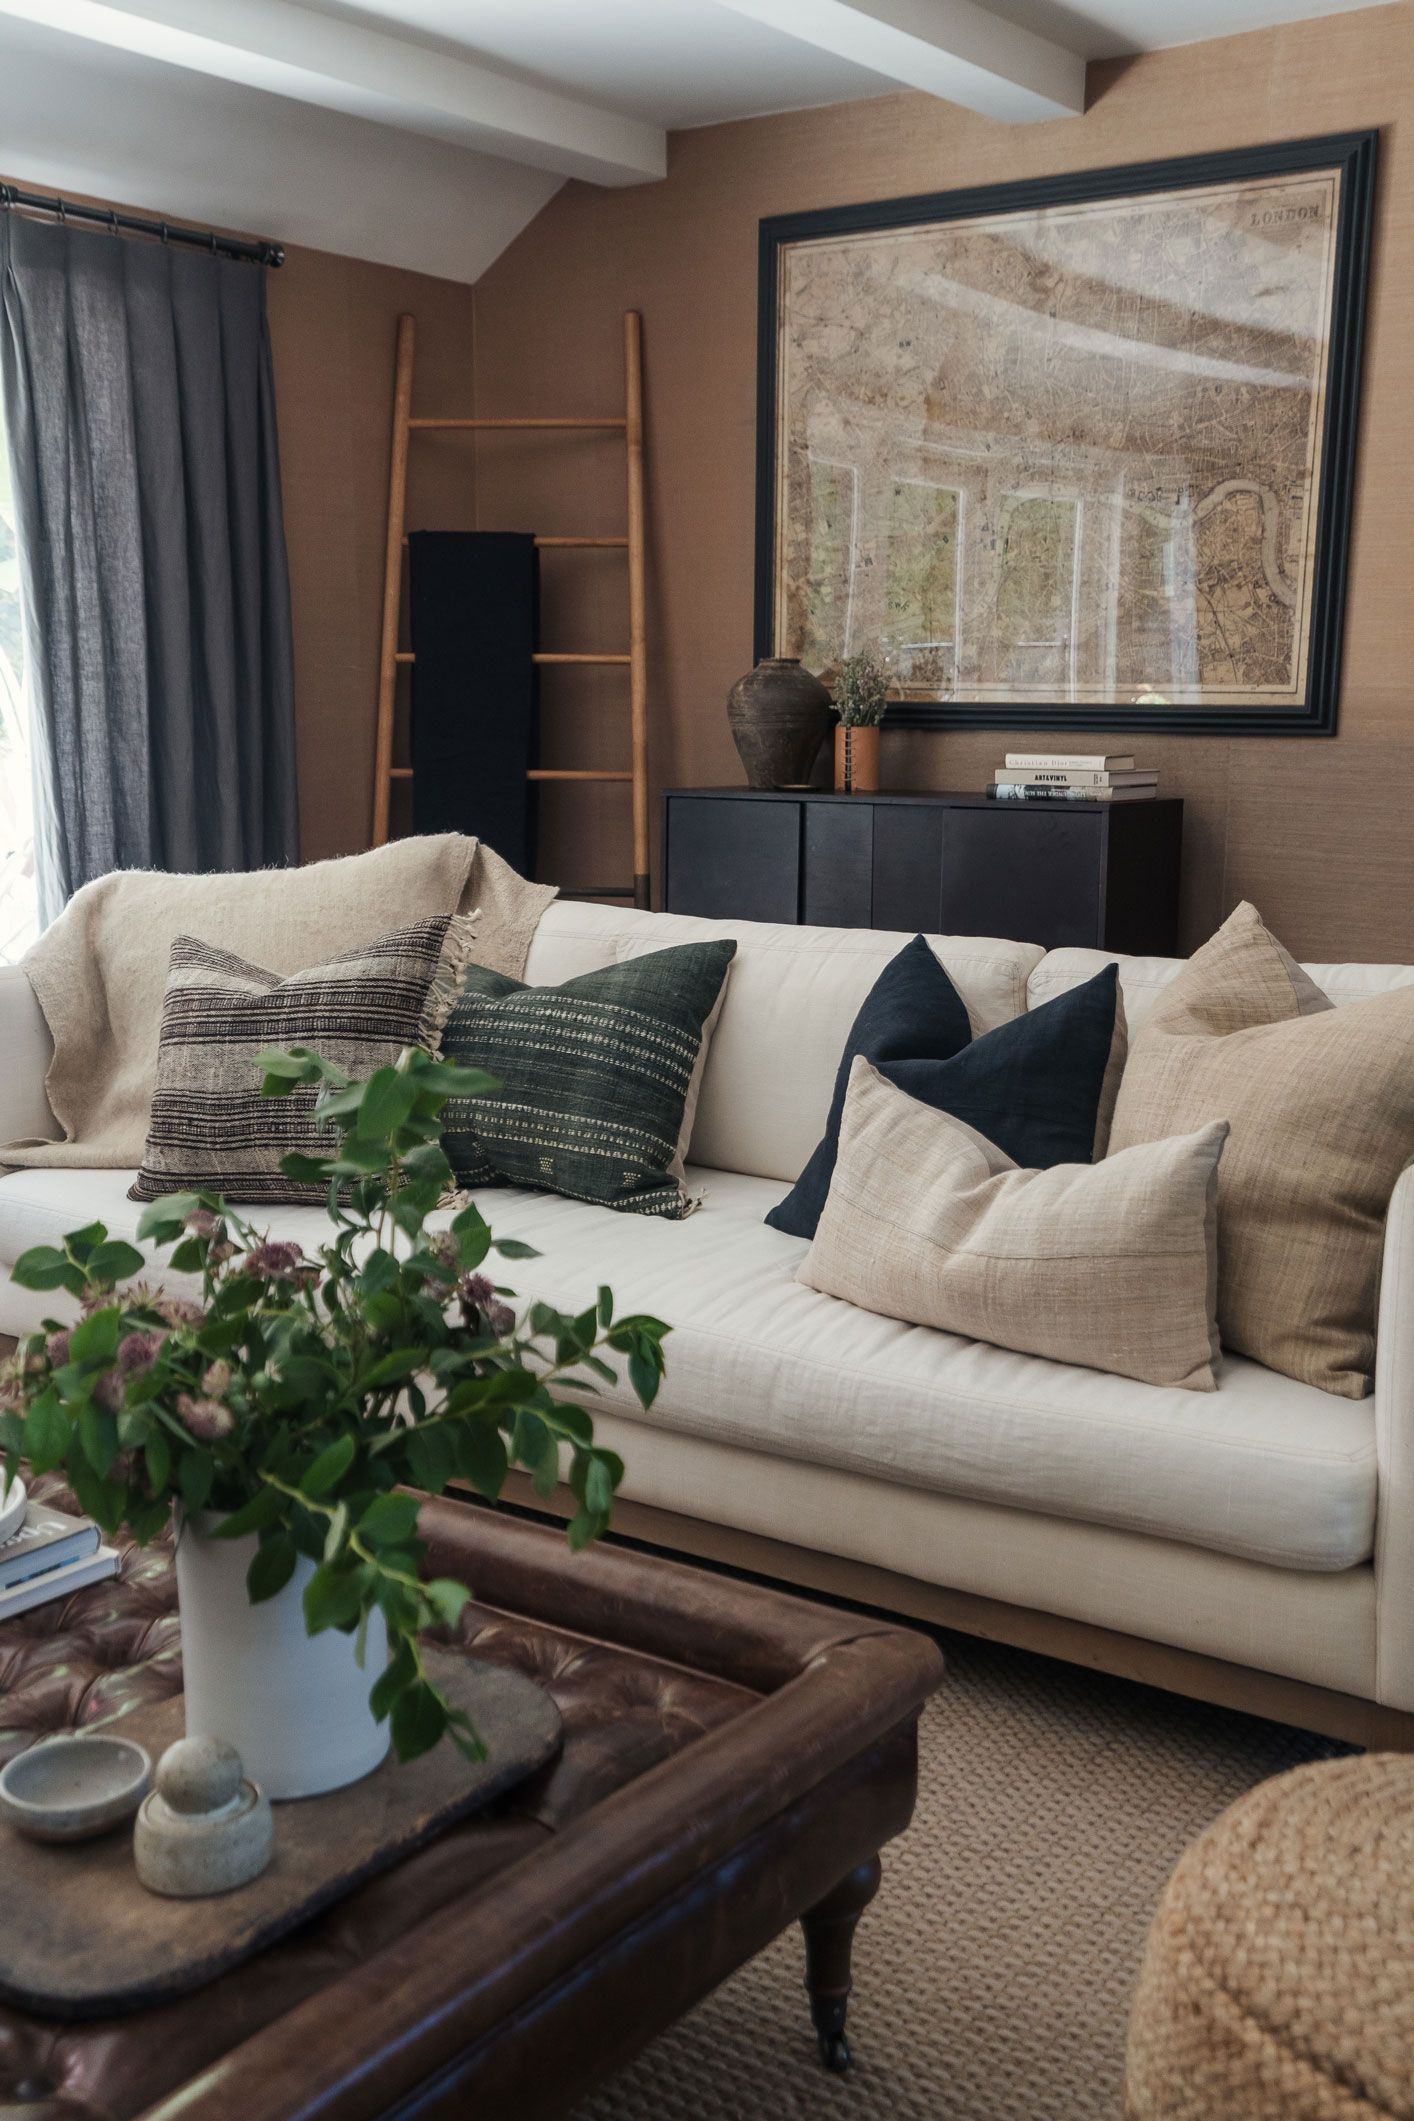 How To Warm Up Your Home With Neutral Tones Front Roe By Louise Roe Living Room Warm Neutral Living Room Brown Home Decor #warm #neutral #living #room